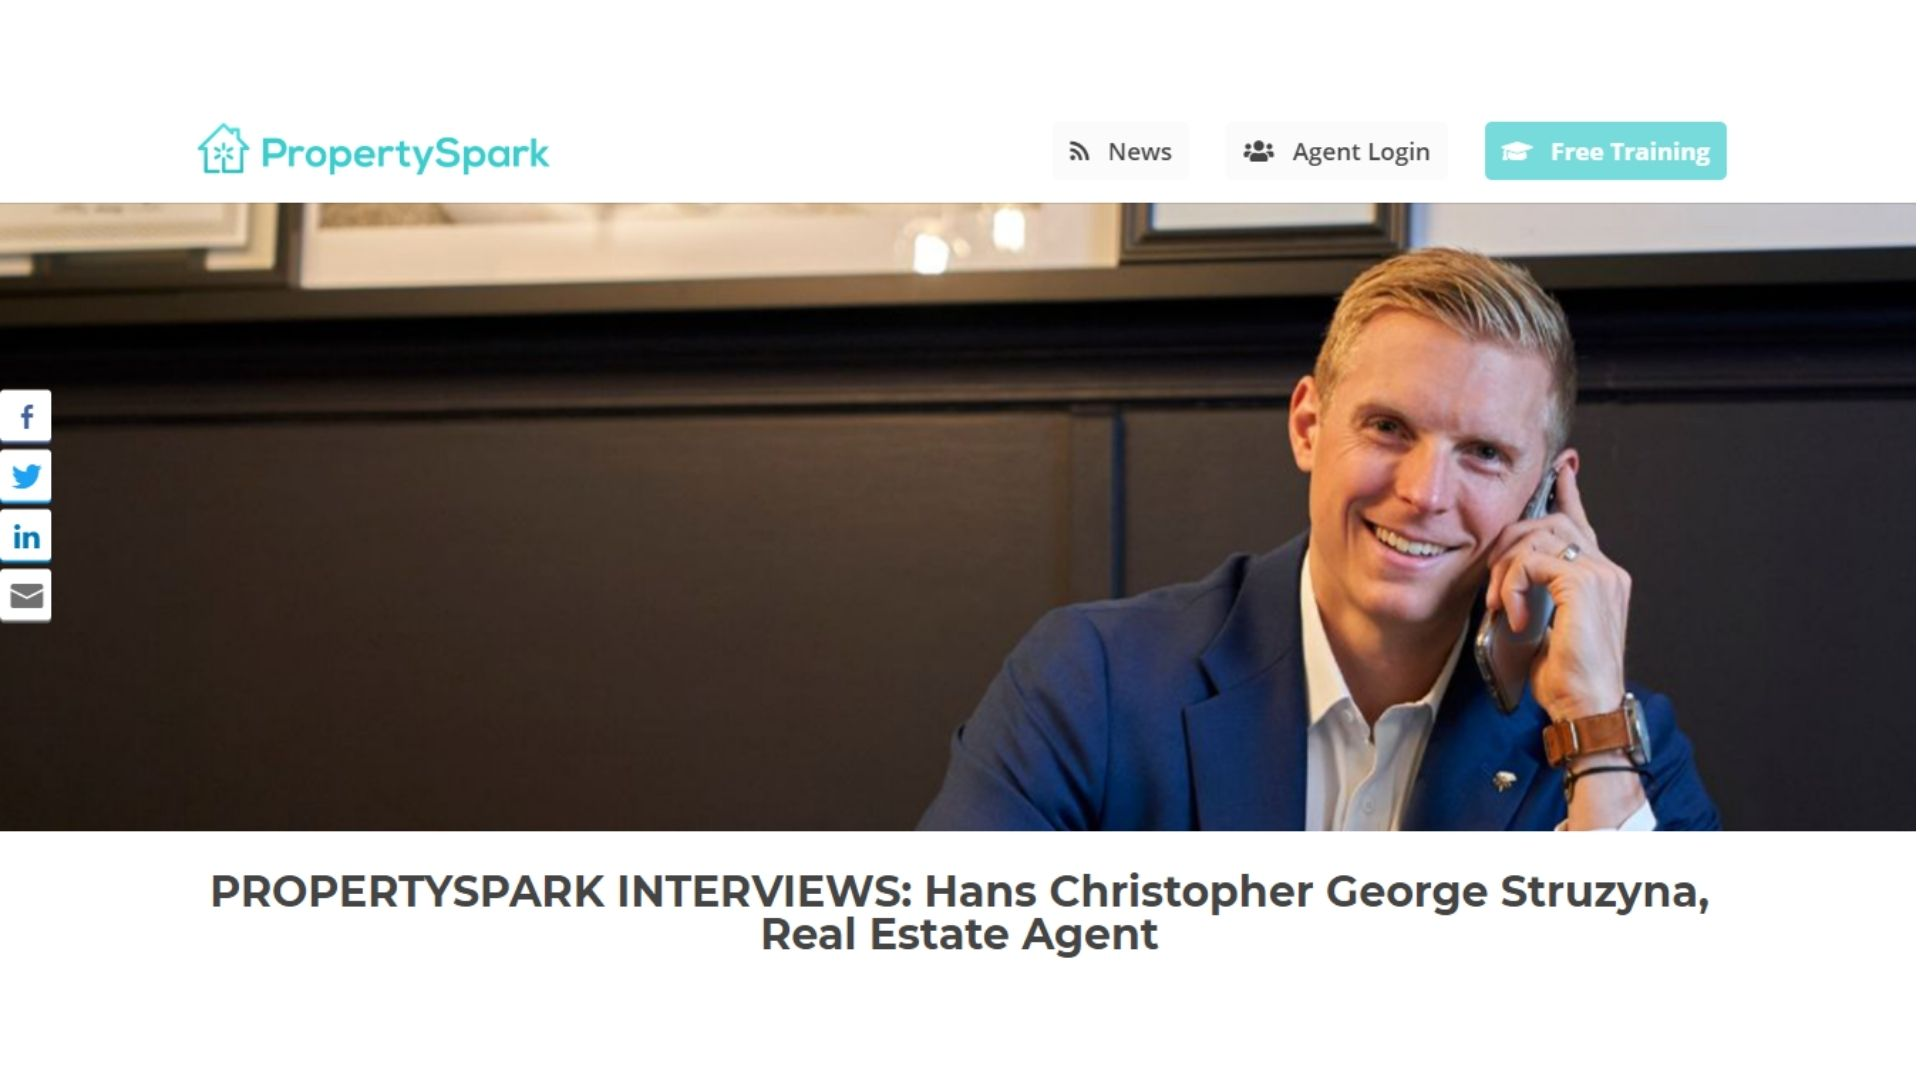 PropertySpark Top Real Estate Agent Interviews | Hans Christopher George Struzyna